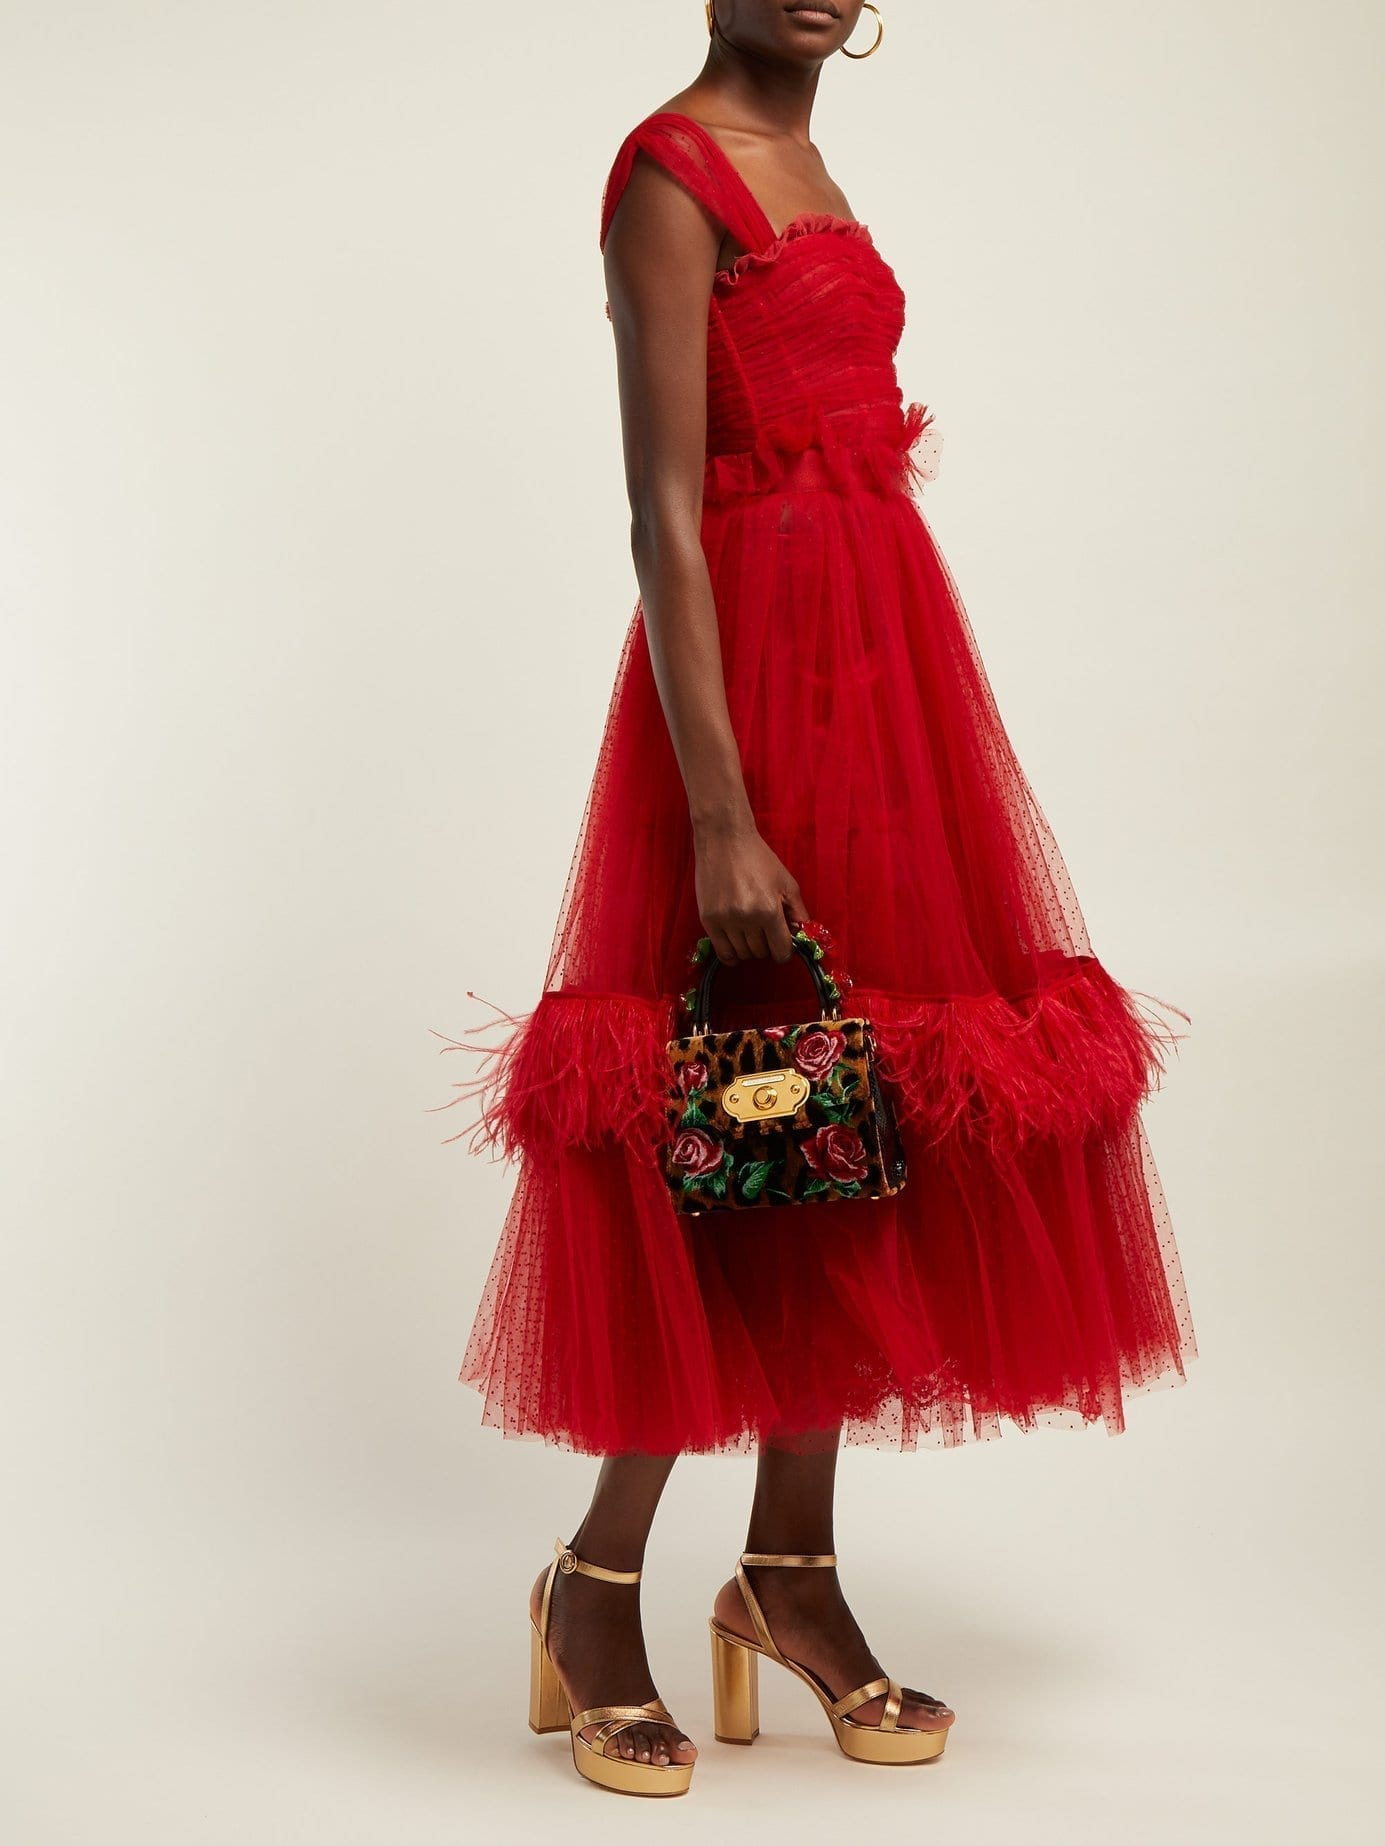 DOLCE & GABBANA Ruffle Trimmed Tulle & Feather Red Gown